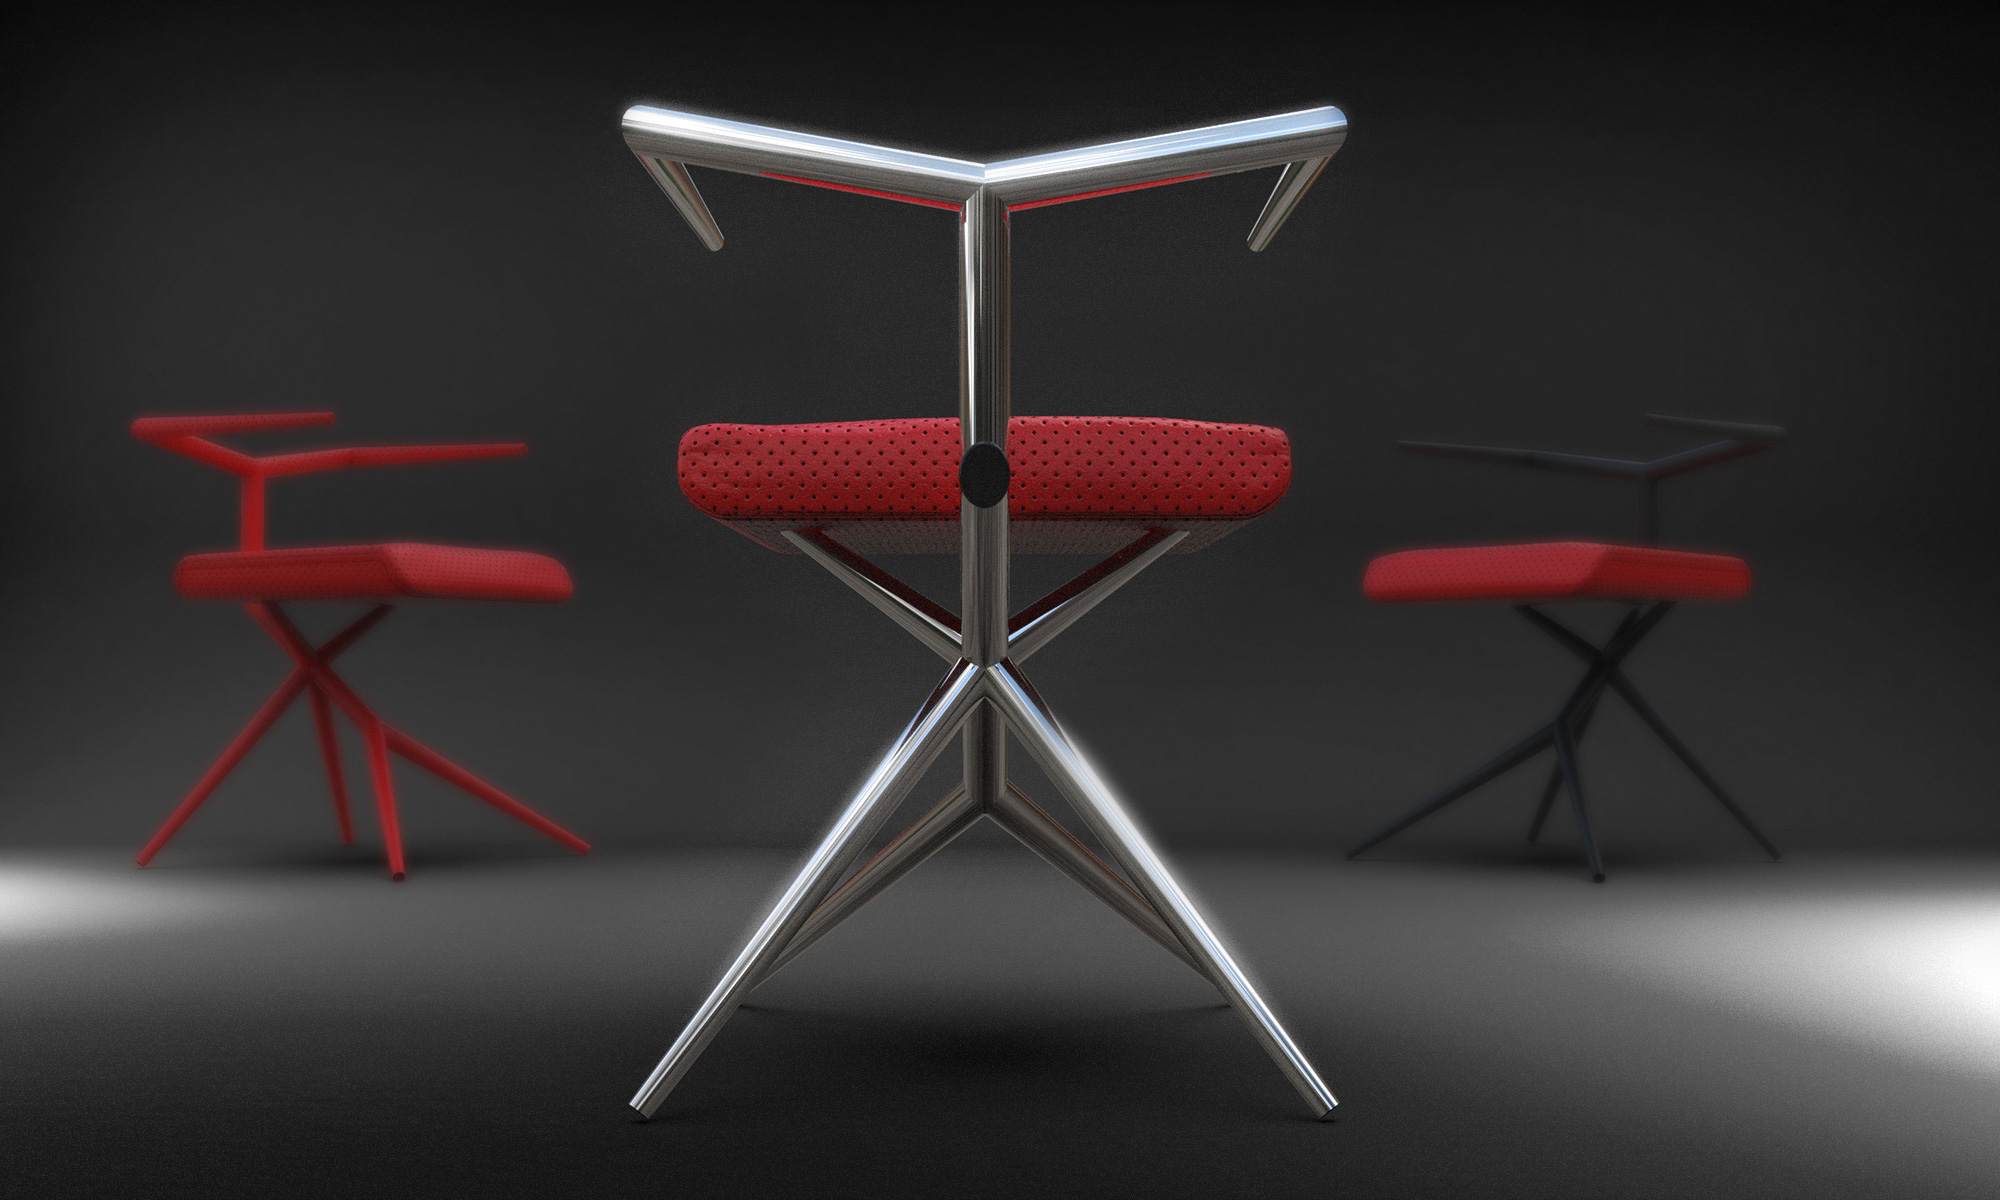 Timany Chair - Designed by Roland Hangyel in Debrecen, Hungary